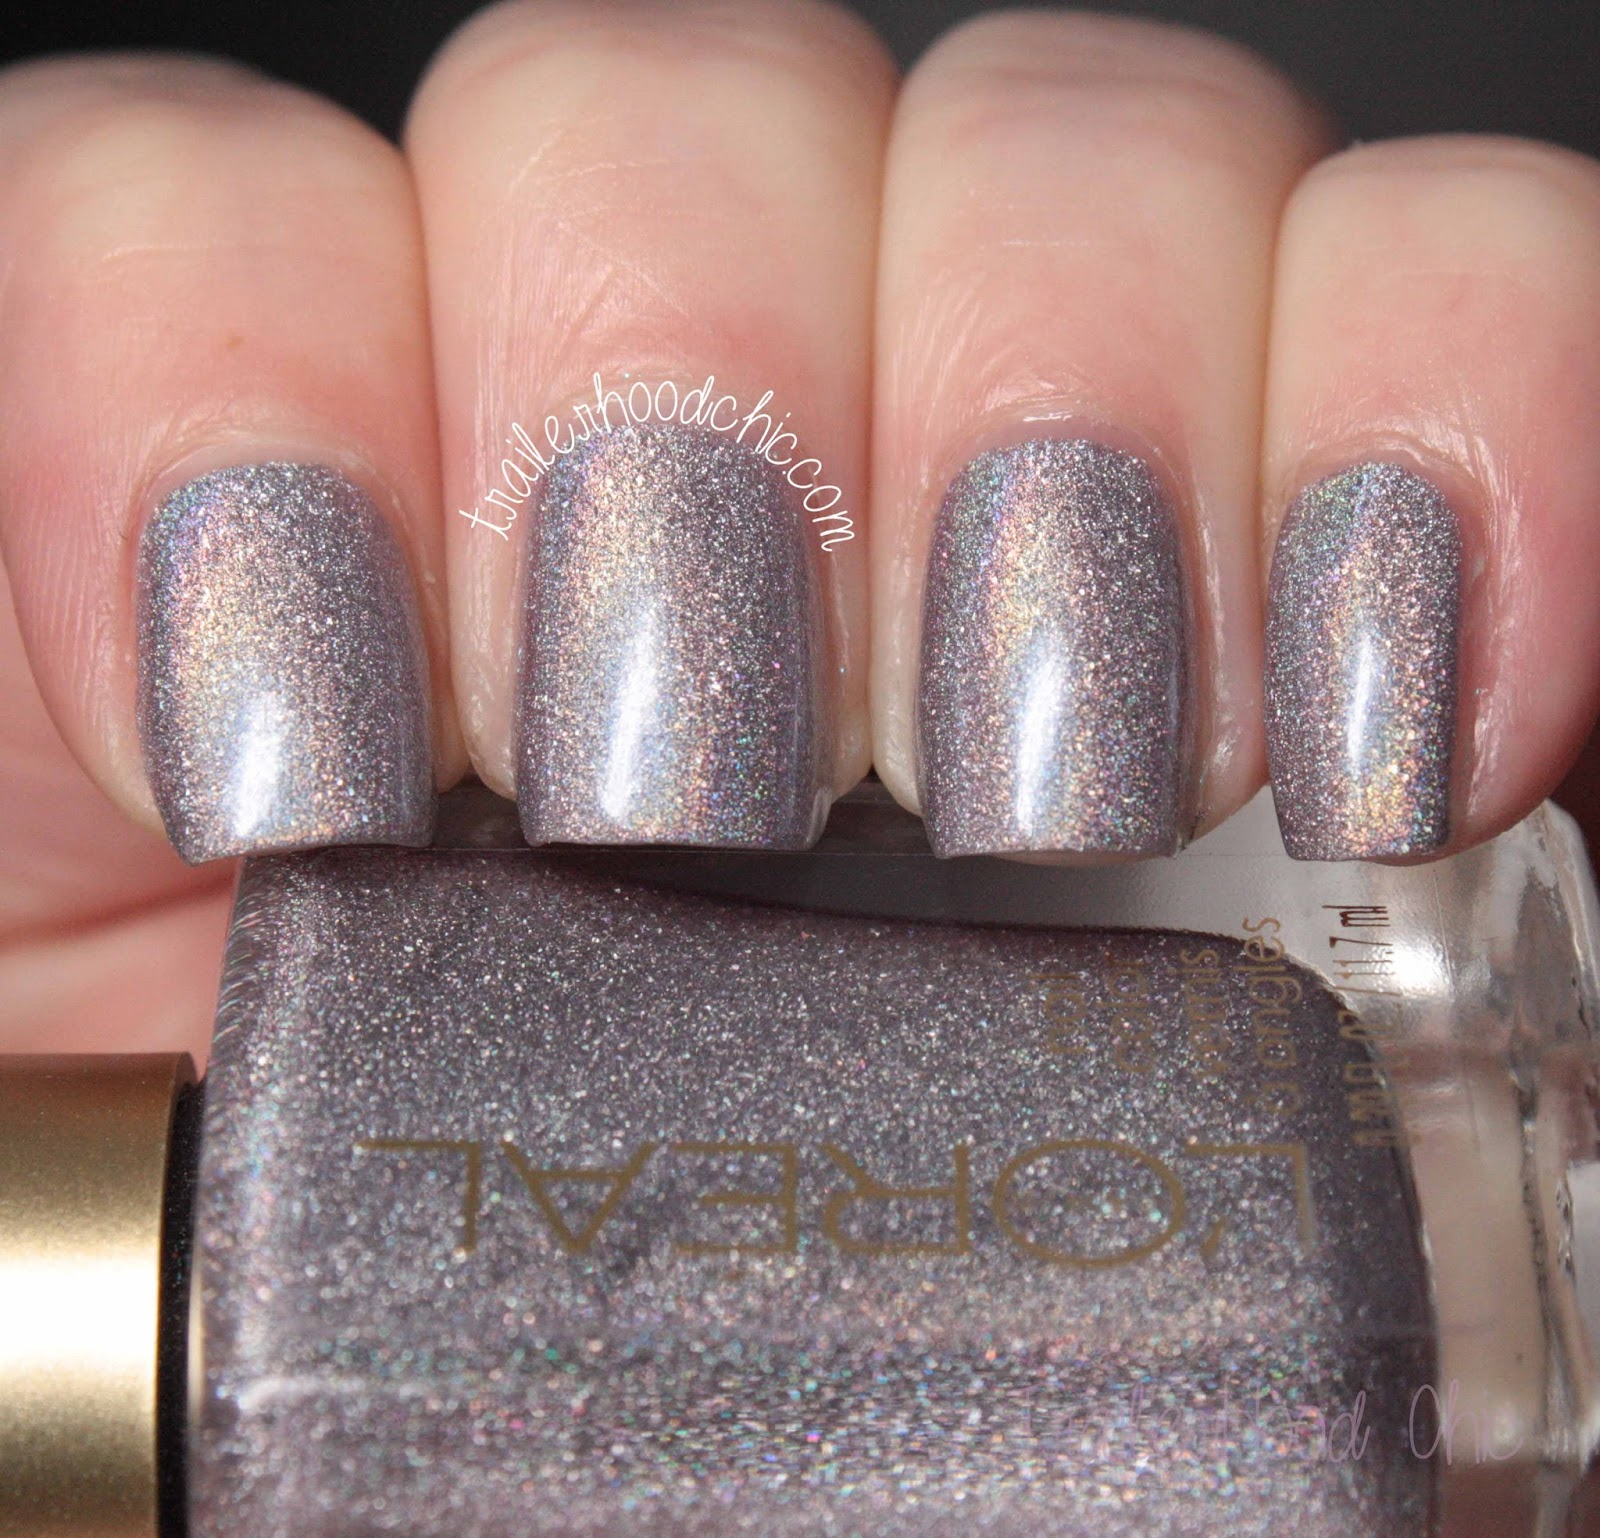 l'oreal masked affair holographic swatches